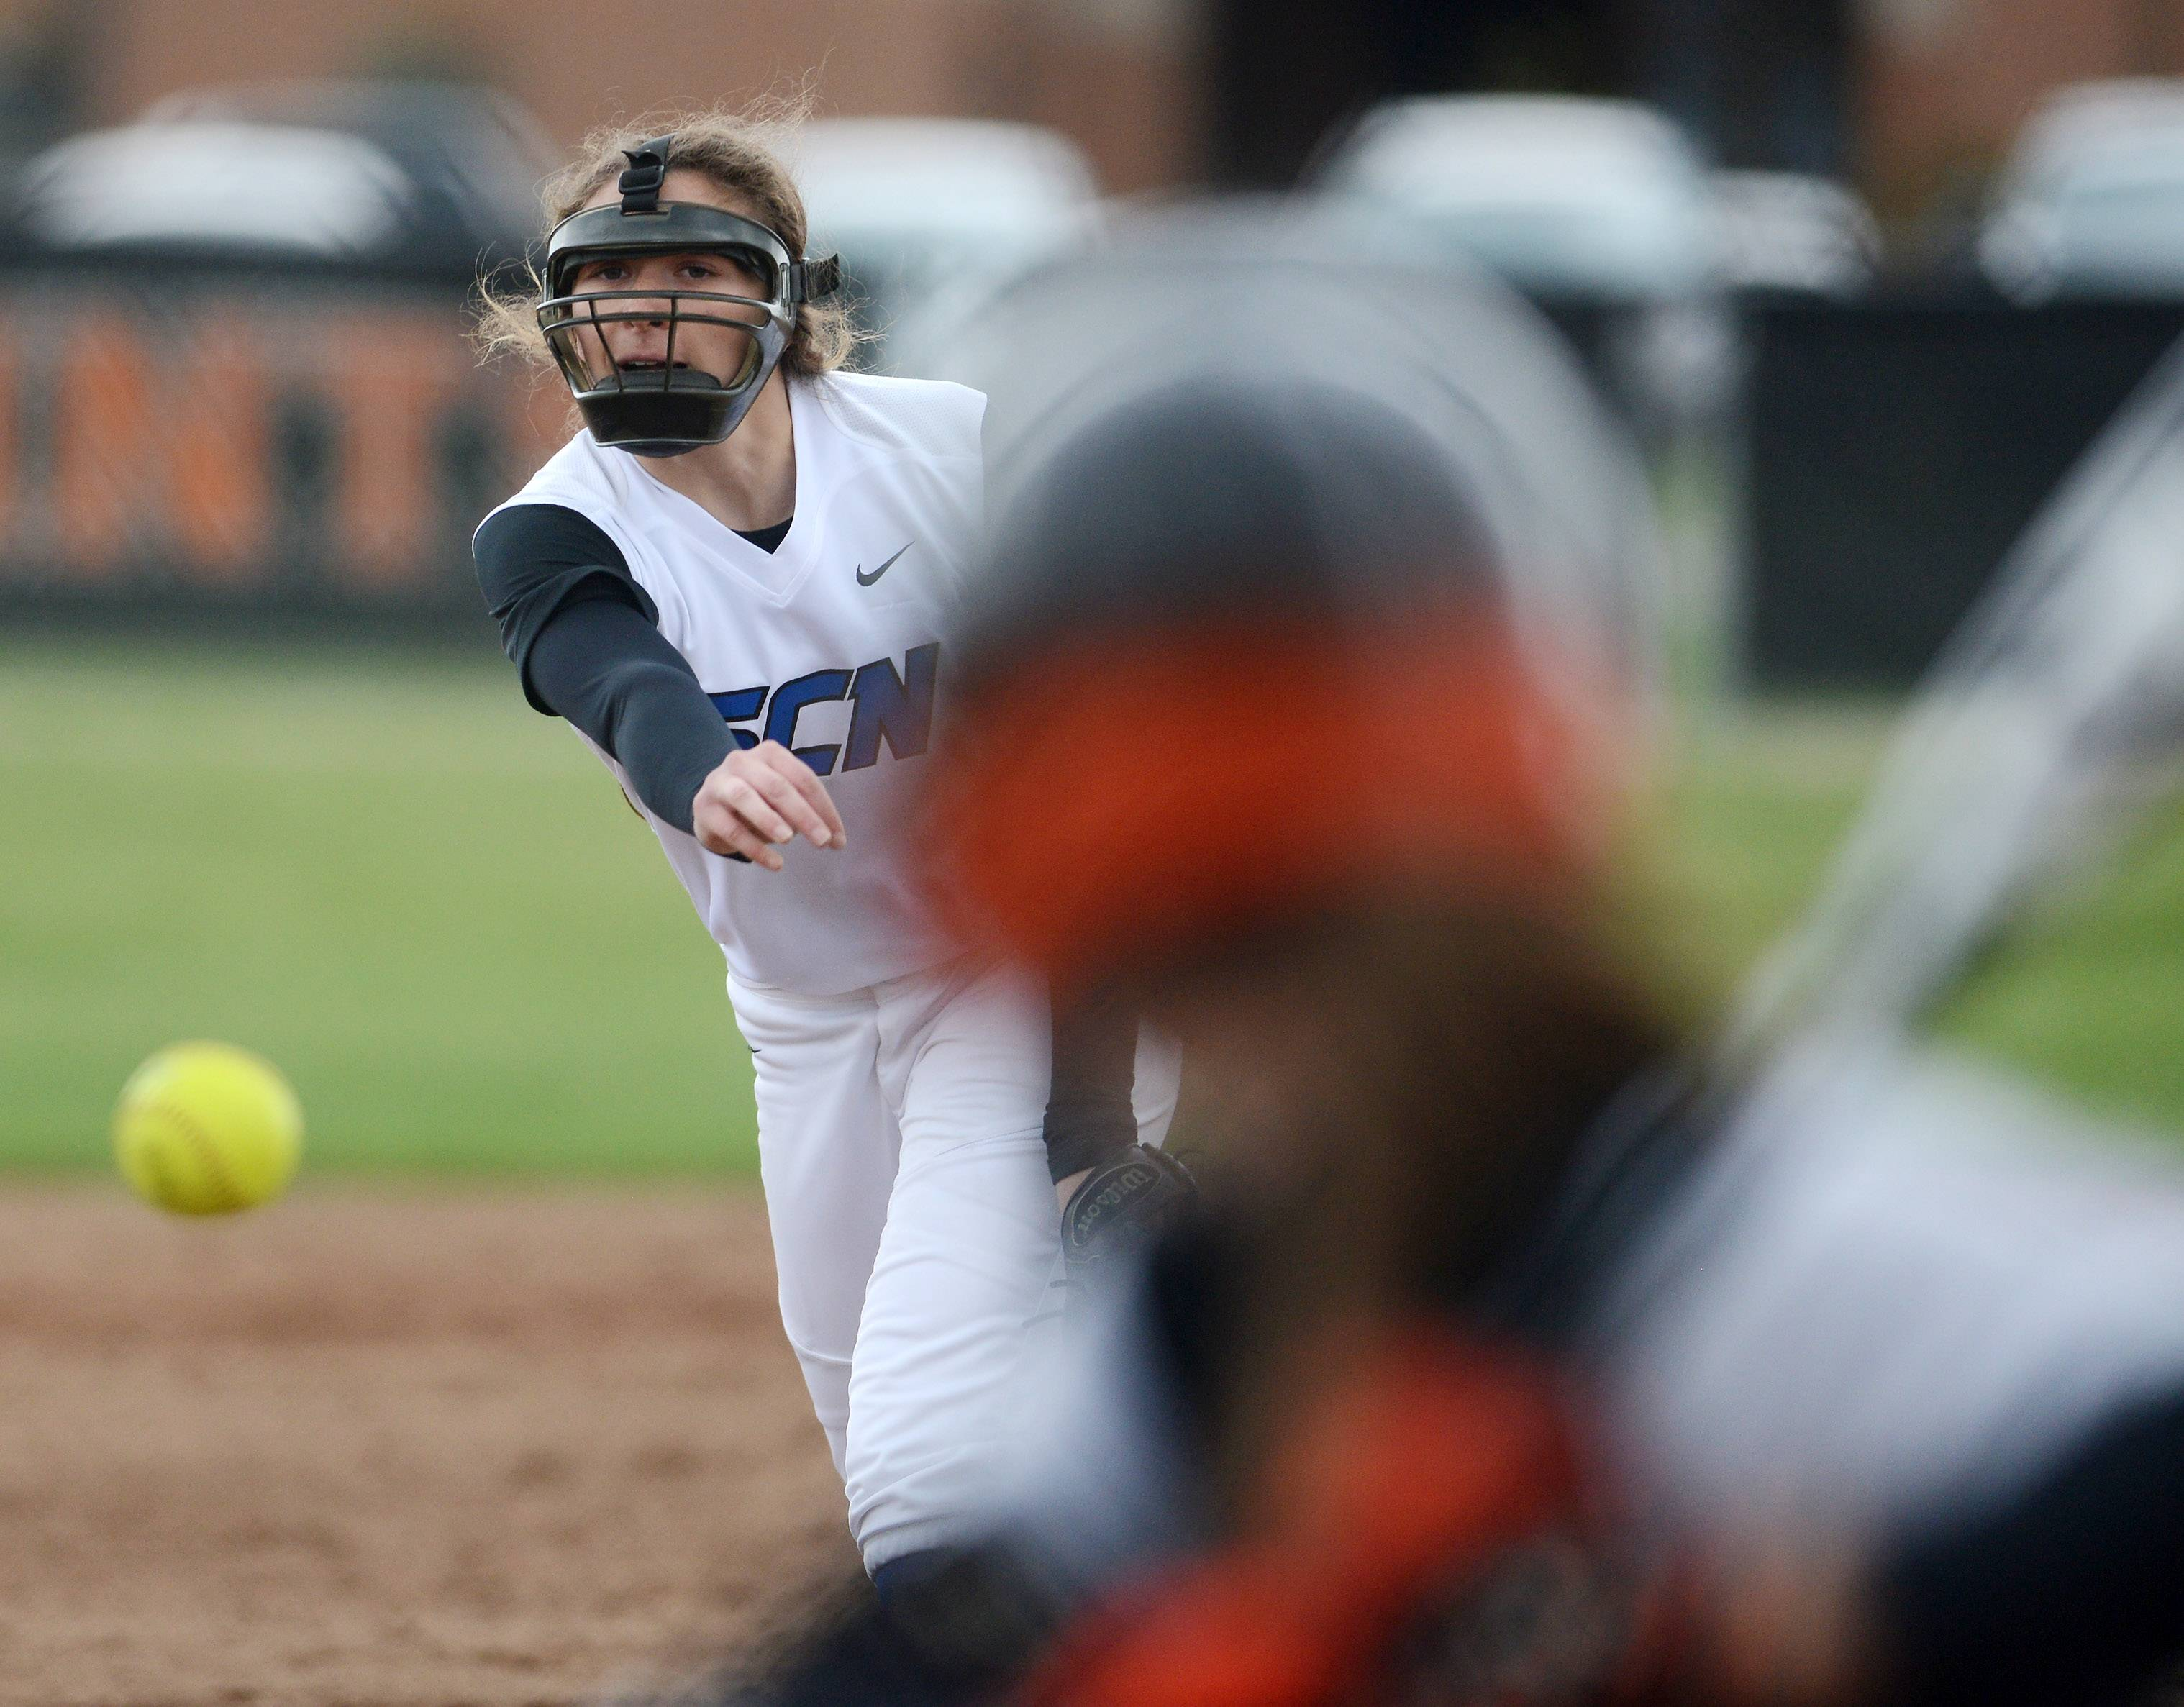 St. Charles North's Sabrina Rabin delivers a pitch to a St. Charles East batter during Tuesday's game in St. Charles.